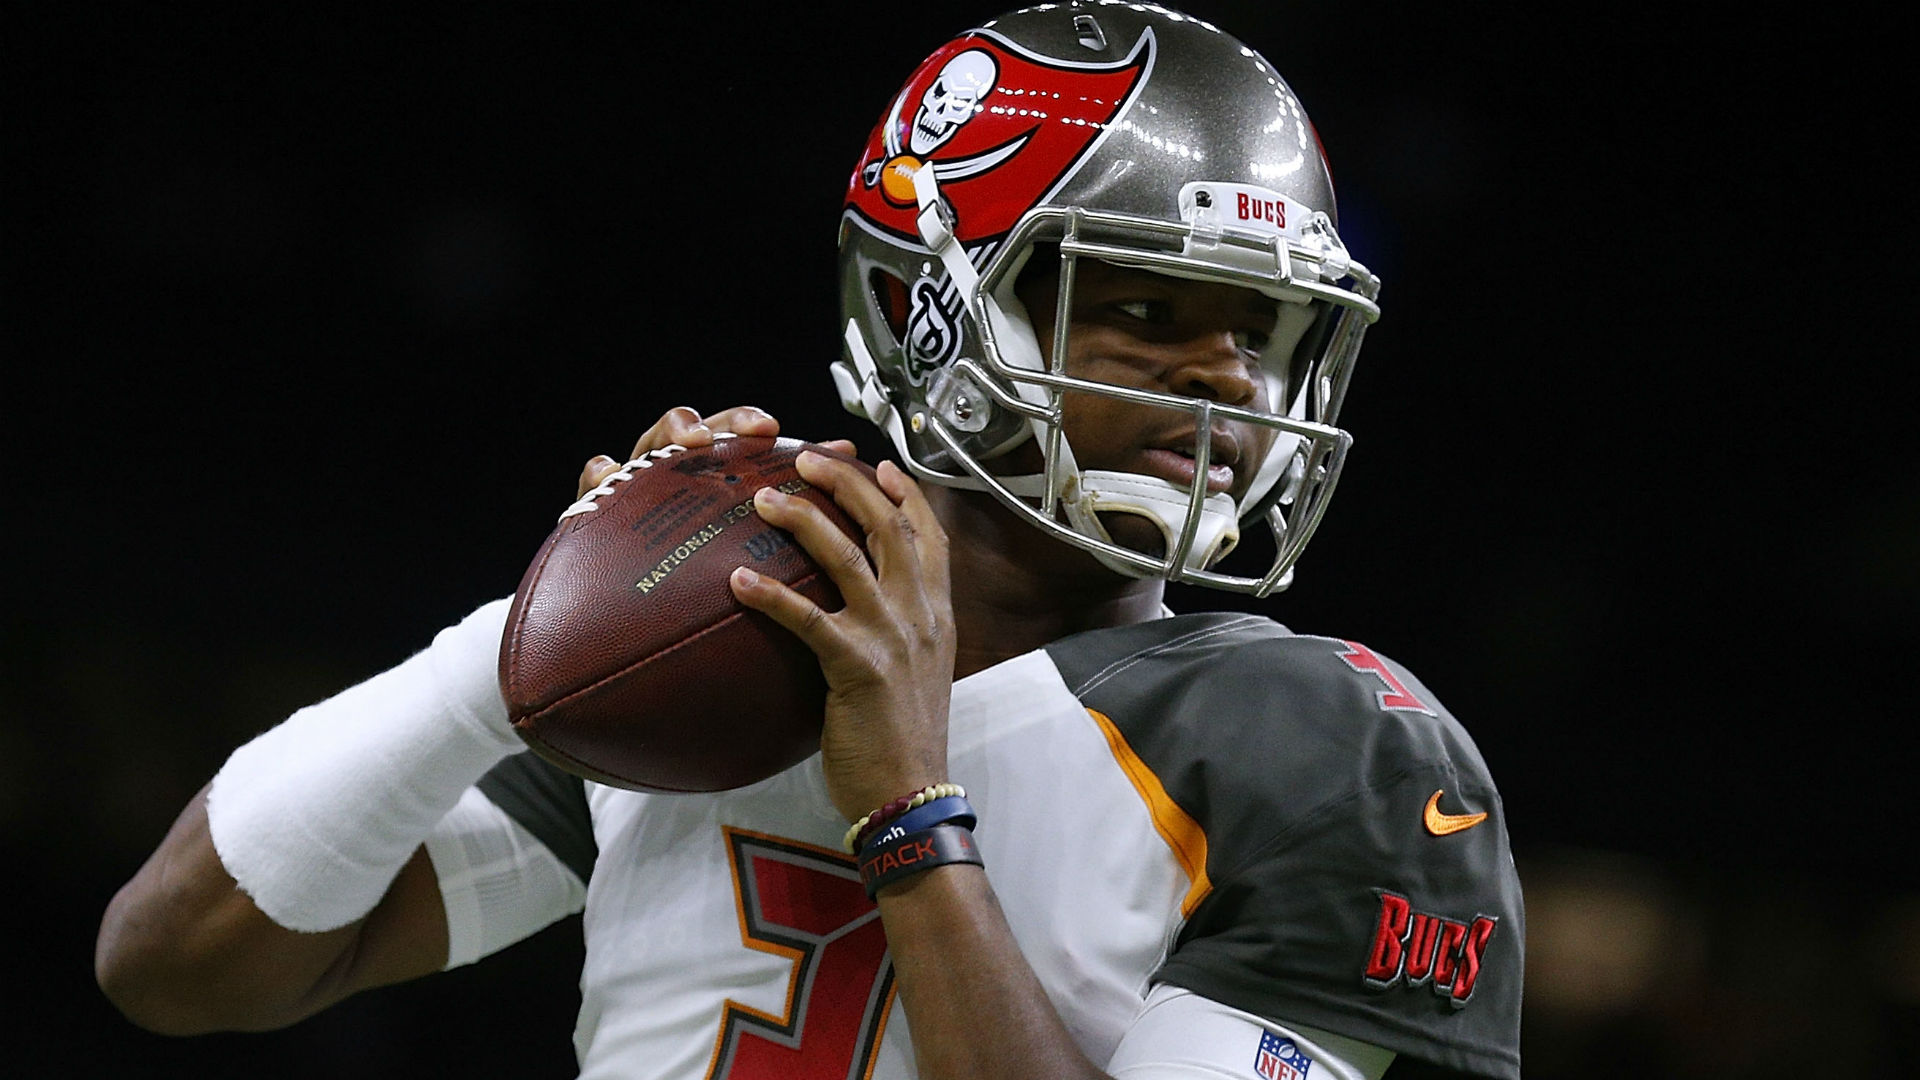 Shoulder injury to sideline Bucs' Winston